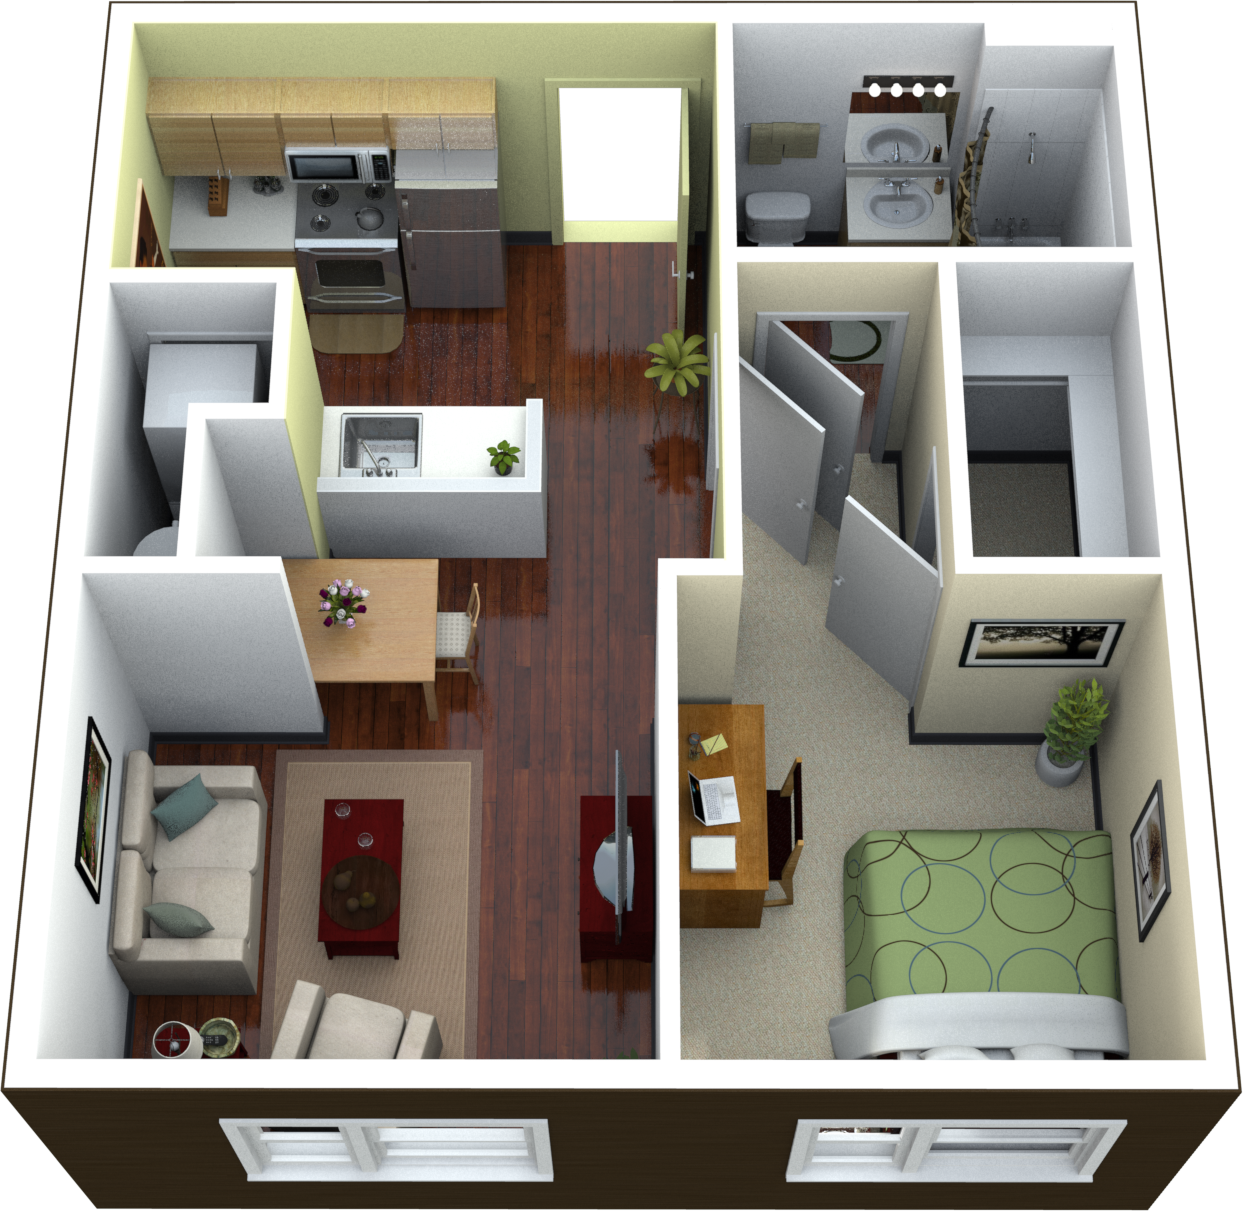 Superbe Amazing Apartment 1 Bedroom Apartments Floor Plan Minimalist Decorating For  1 Bedroom Apartment